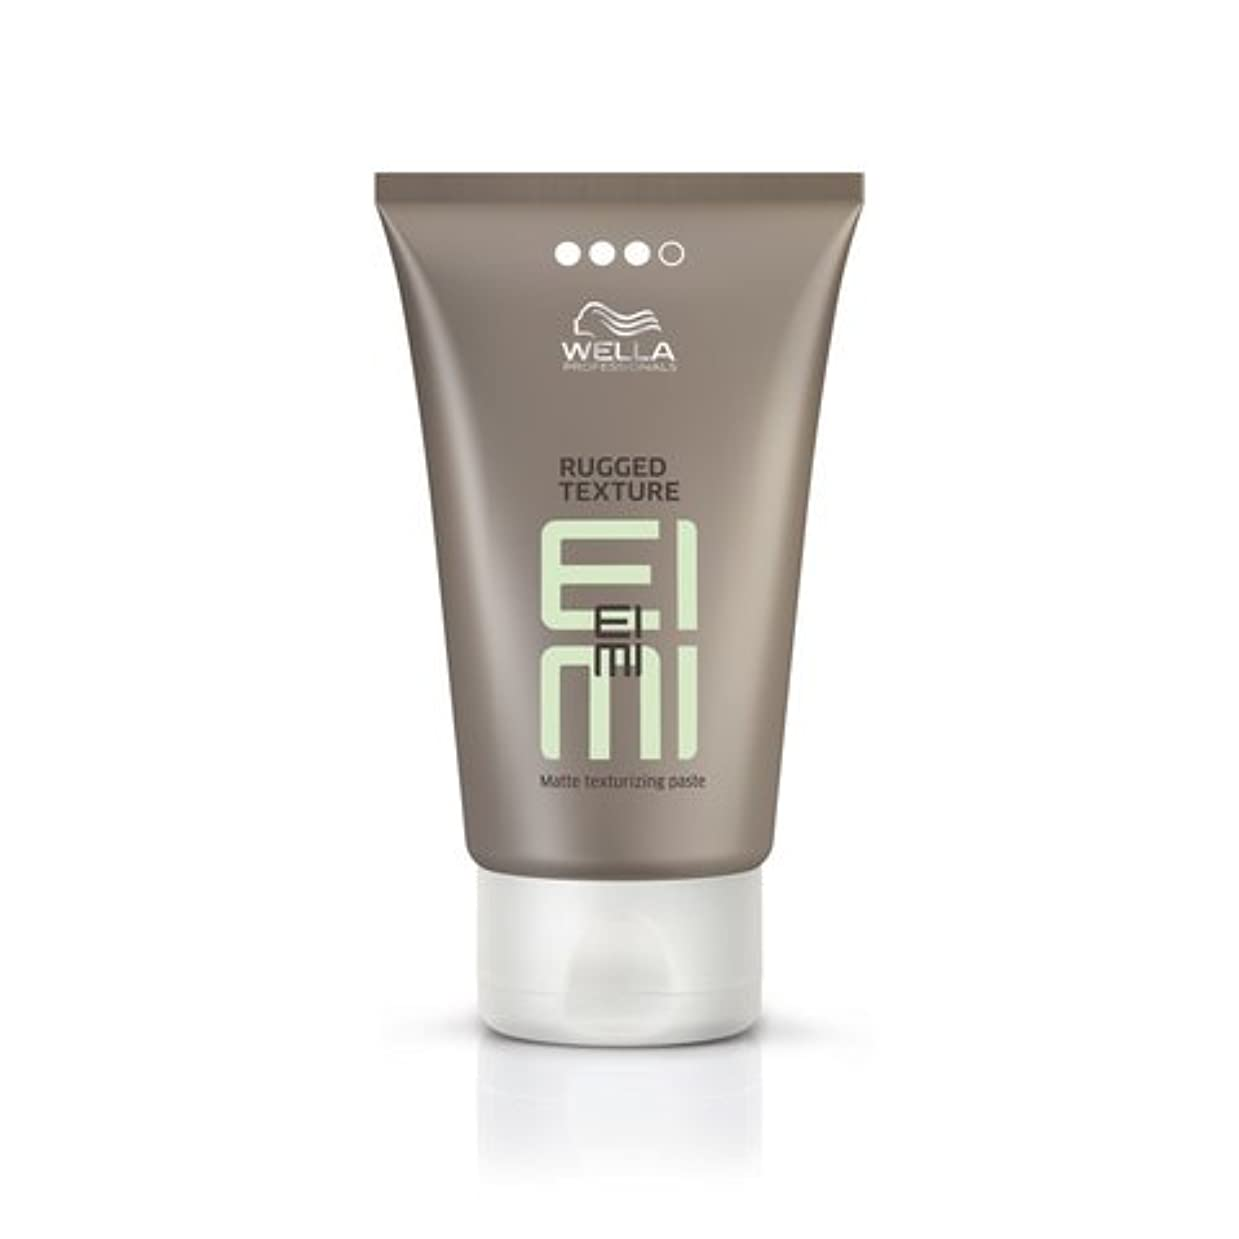 ミシン広告するスラムWella EIMI Rugged Texture - Matte Texturising Paste 75 ml [並行輸入品]